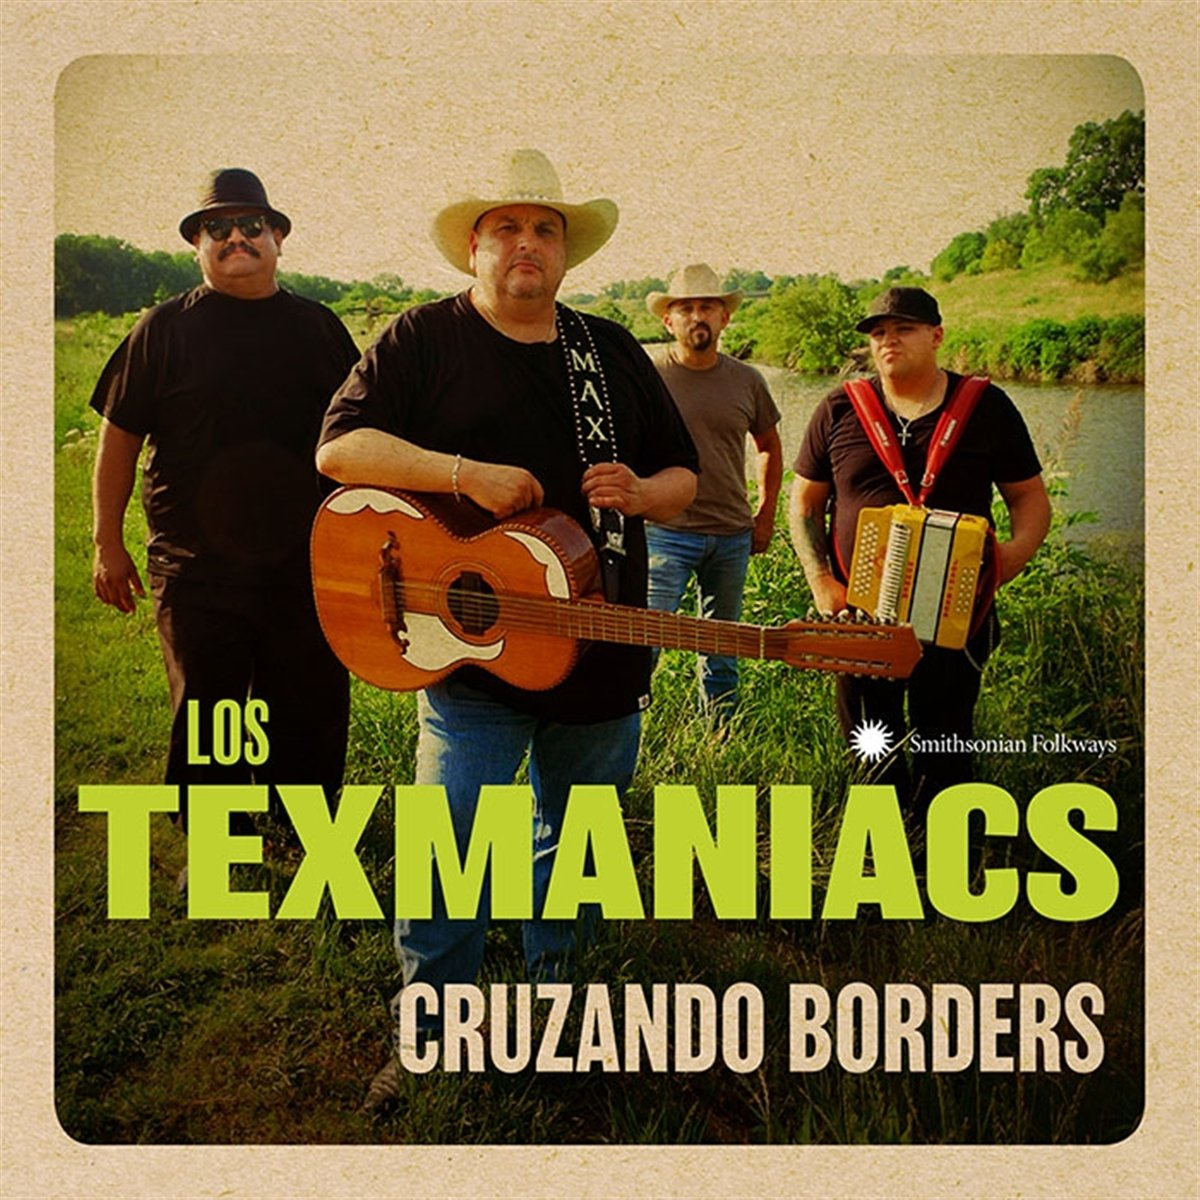 Cruzando Borders by Smithsonian Folkways